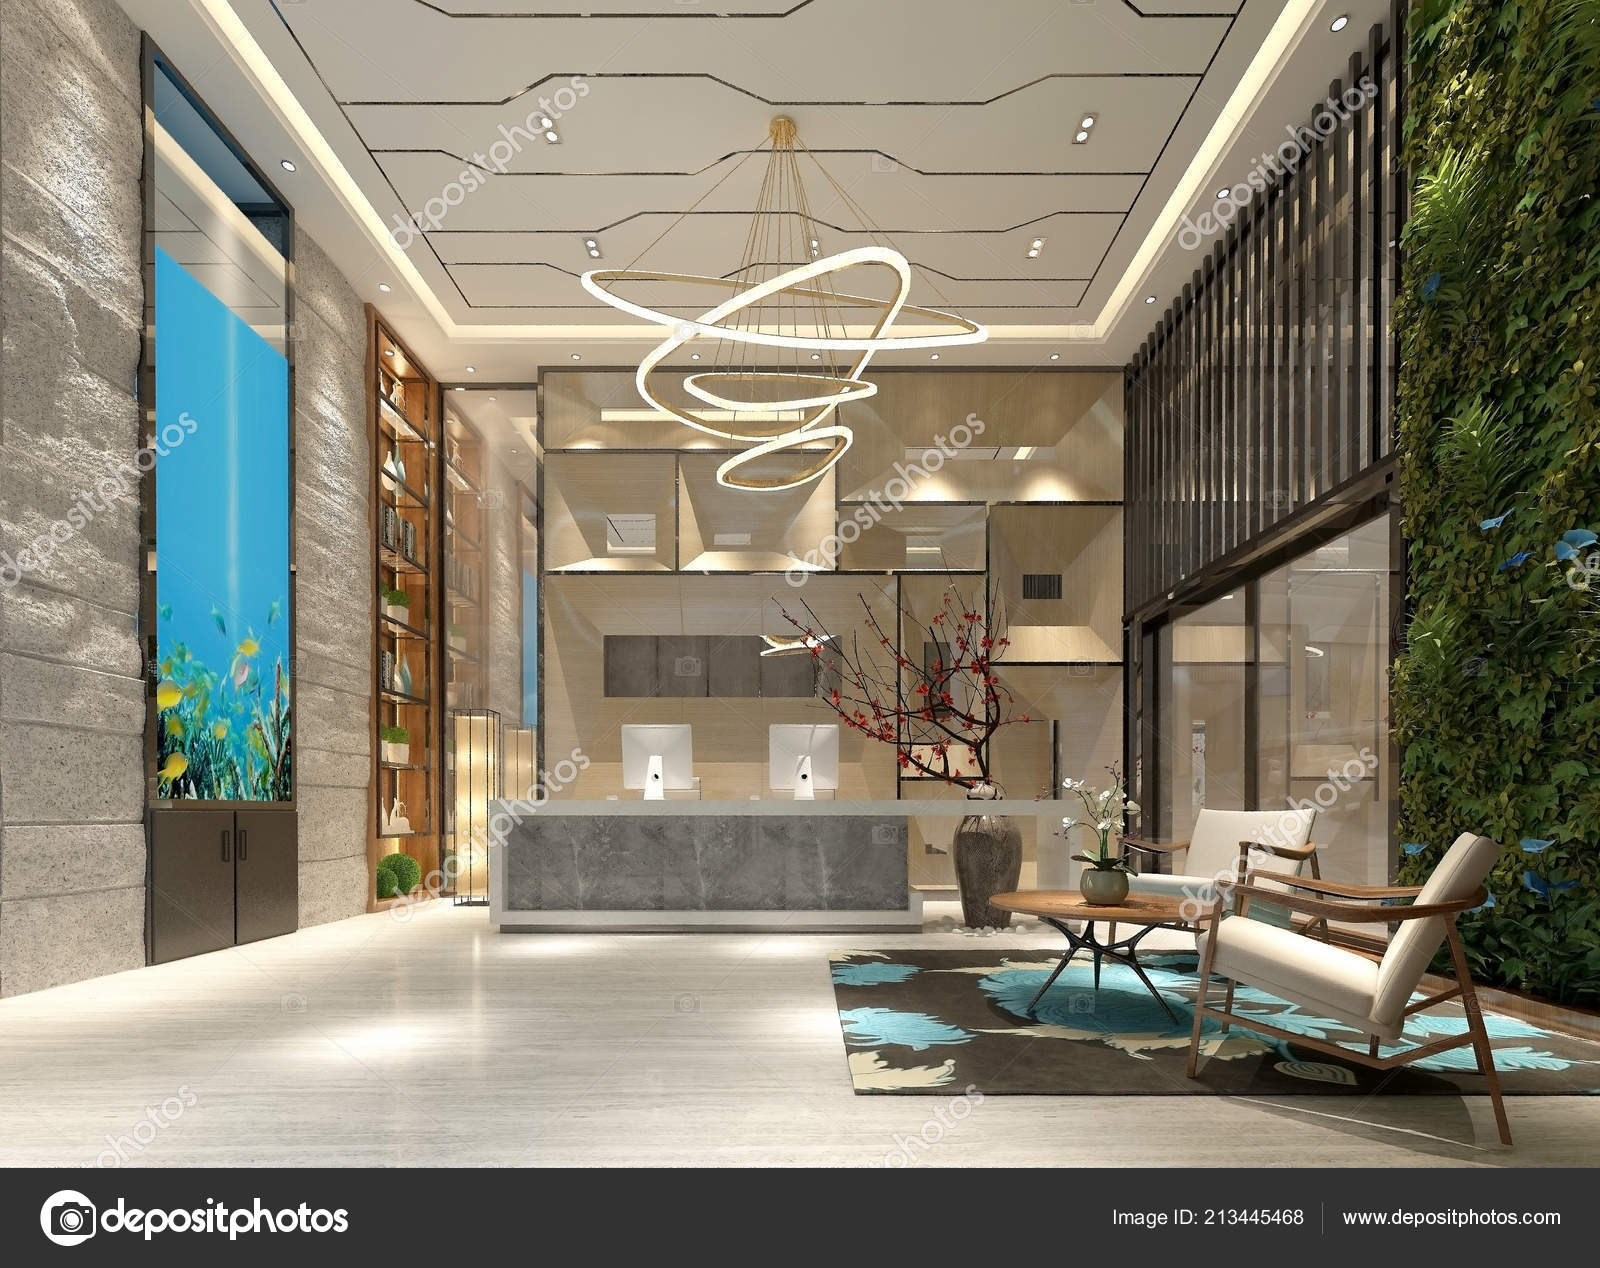 Render luxury modern hotel entrance lobby stock photo for Hotel entrance decor